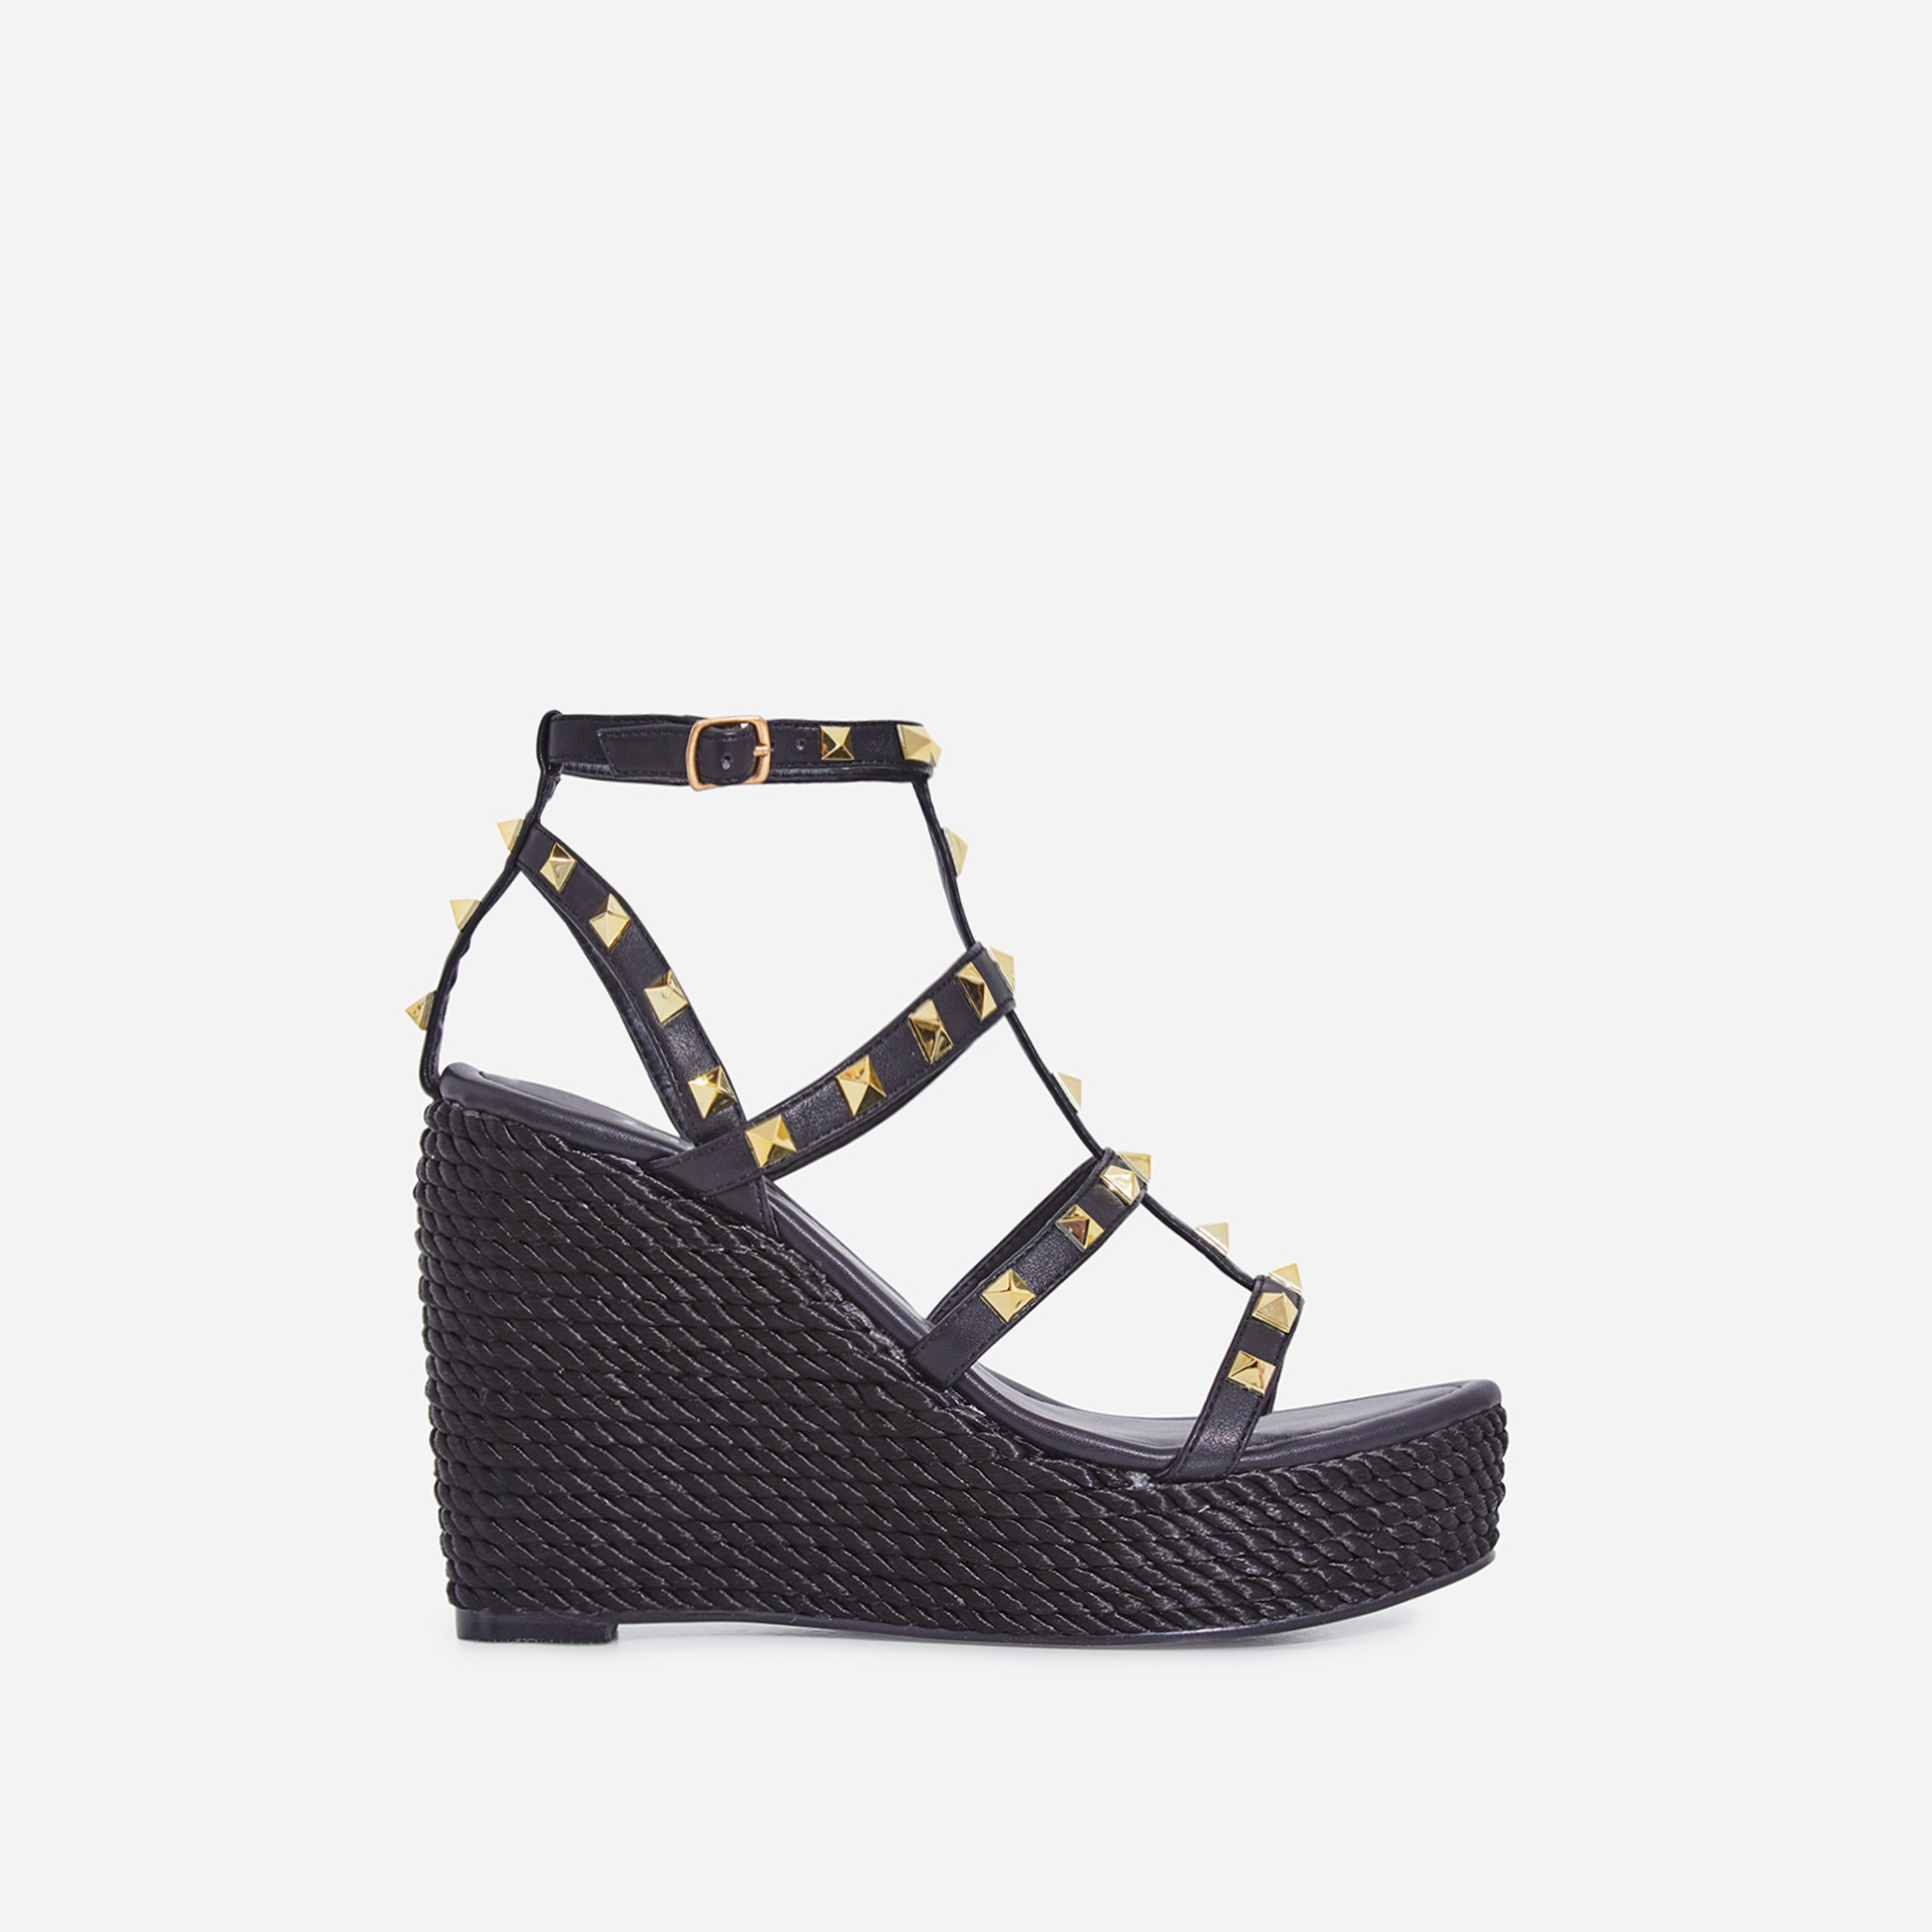 Summer Studded Detail Espadrille Wedge Platform Heel In Black Faux Leather